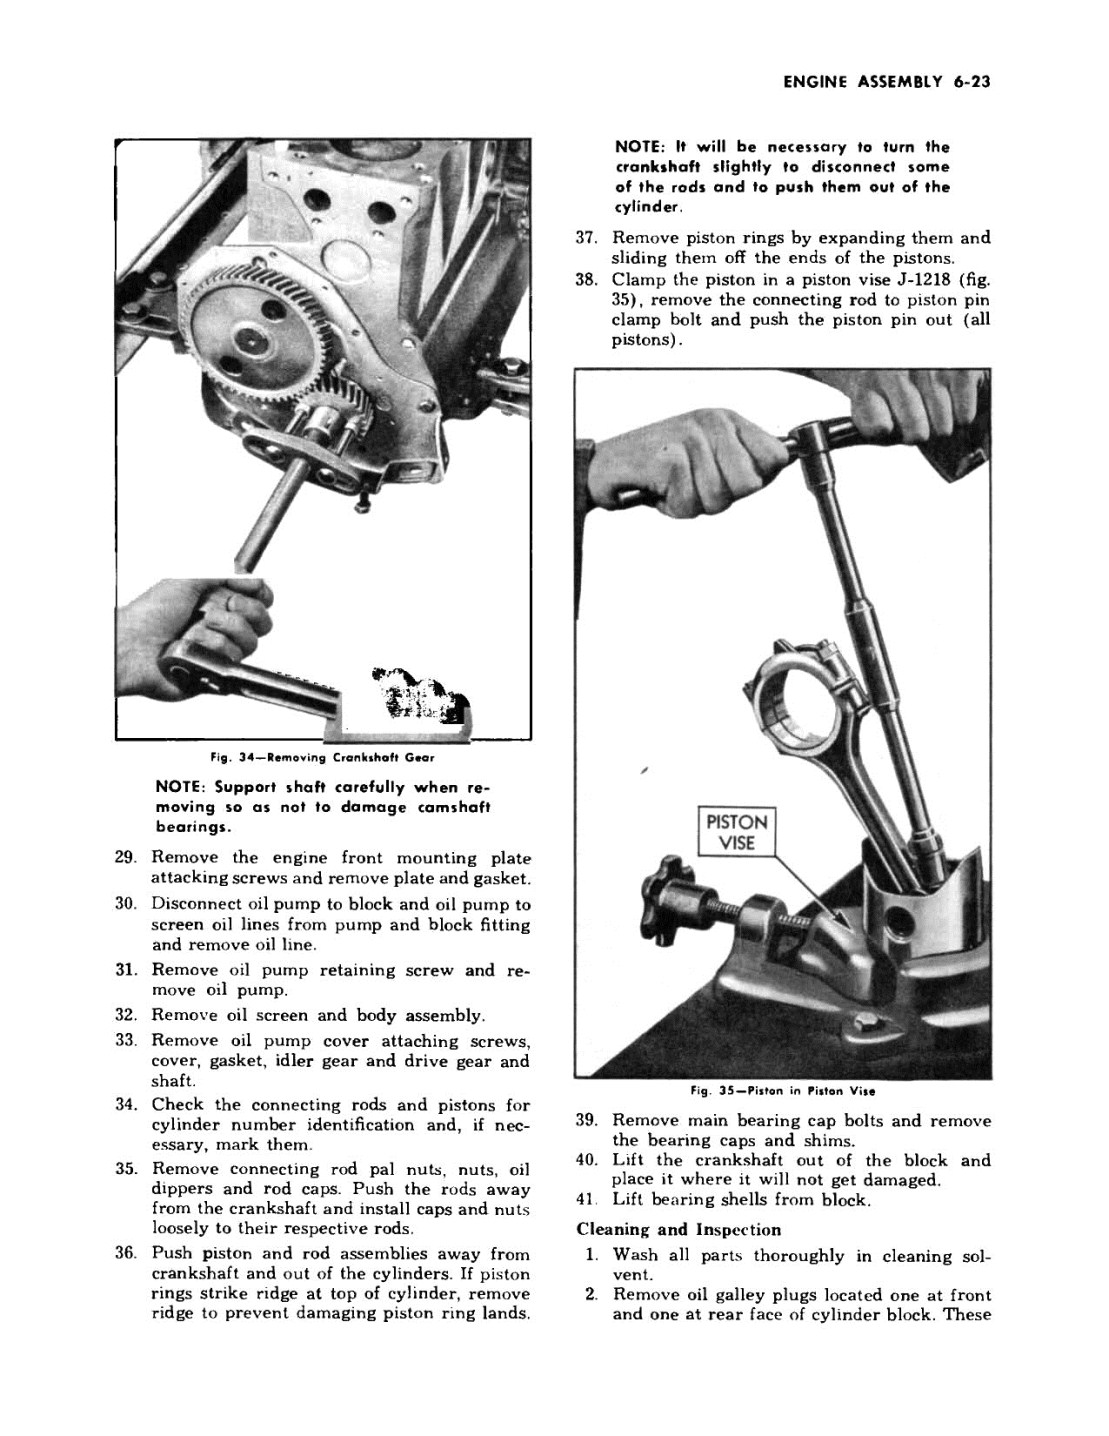 1949 Chevrolet Passenger Car Repair Manual including 1950